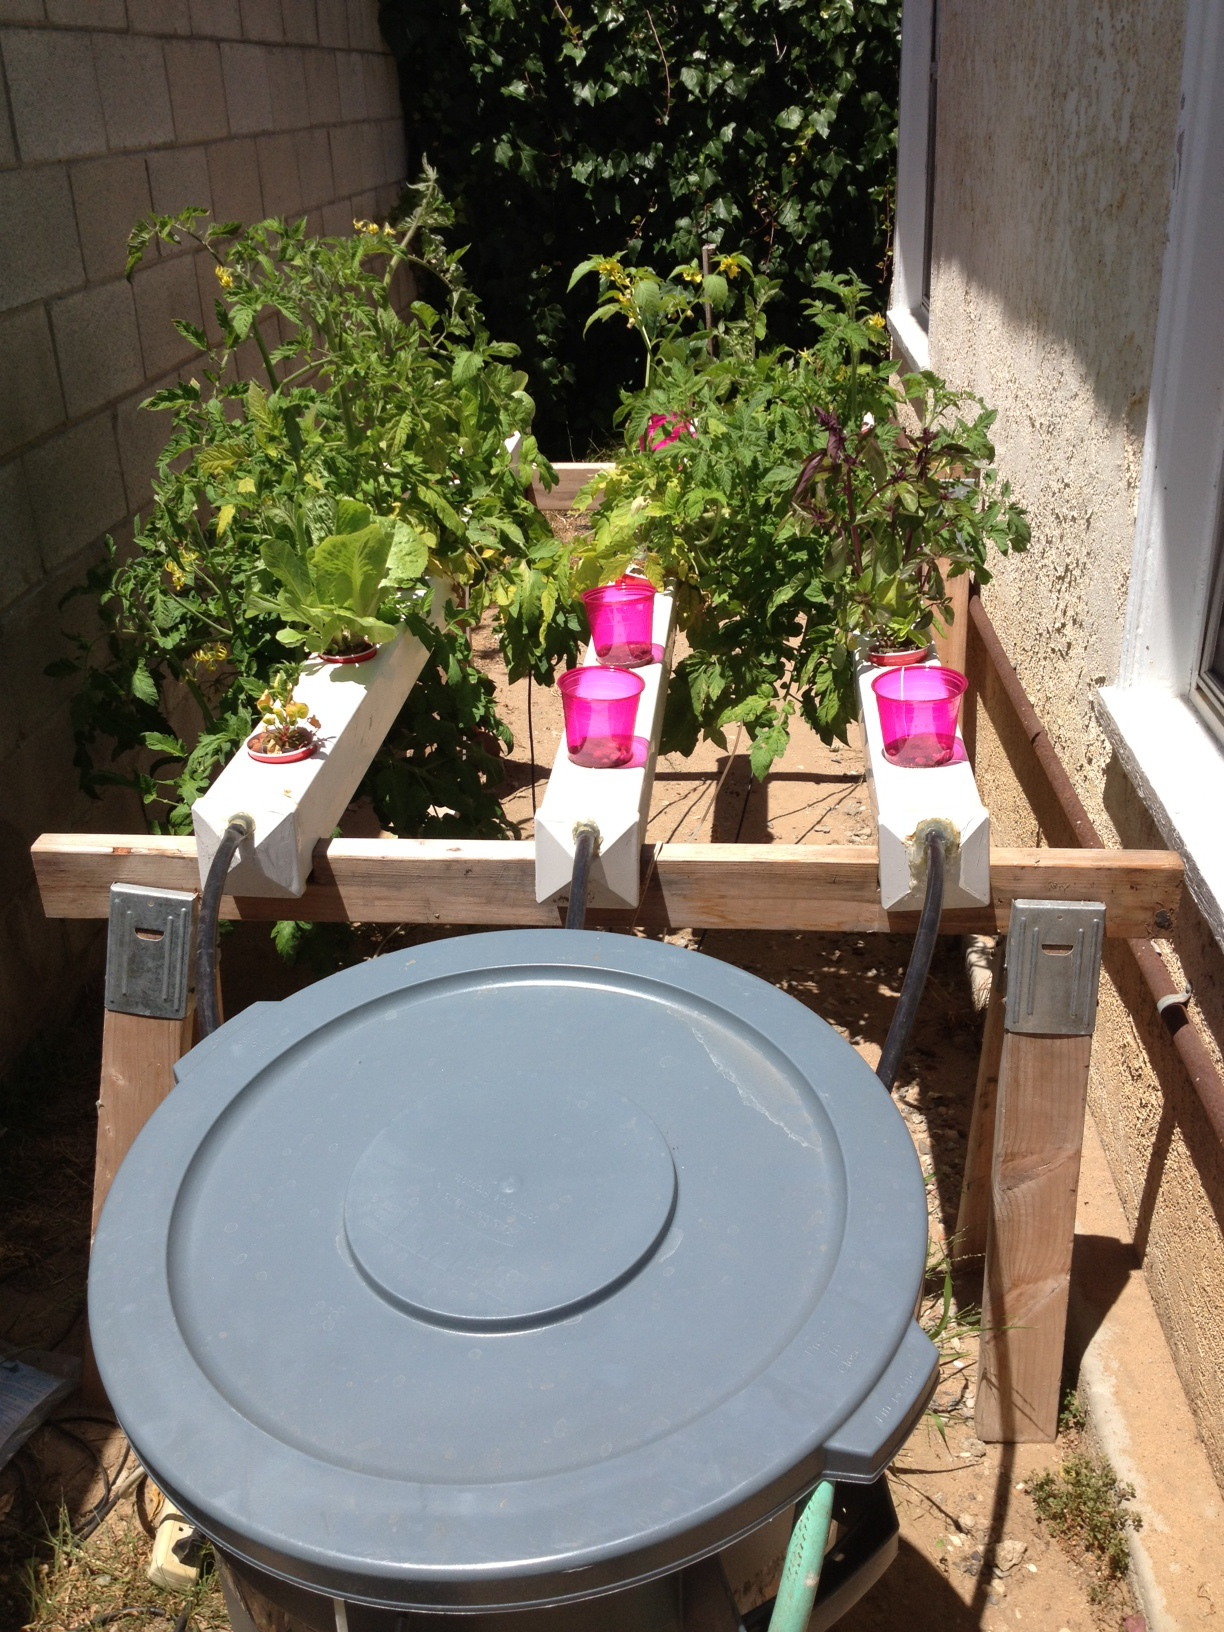 With the help of this website Jeremy A. in Manhattan beach set up this garden on the side of his house.  Awesome use of a trash can as the reservoir, I bet he only has to fill it up once a month!   But, he loses a few style points with the bright pink cups!